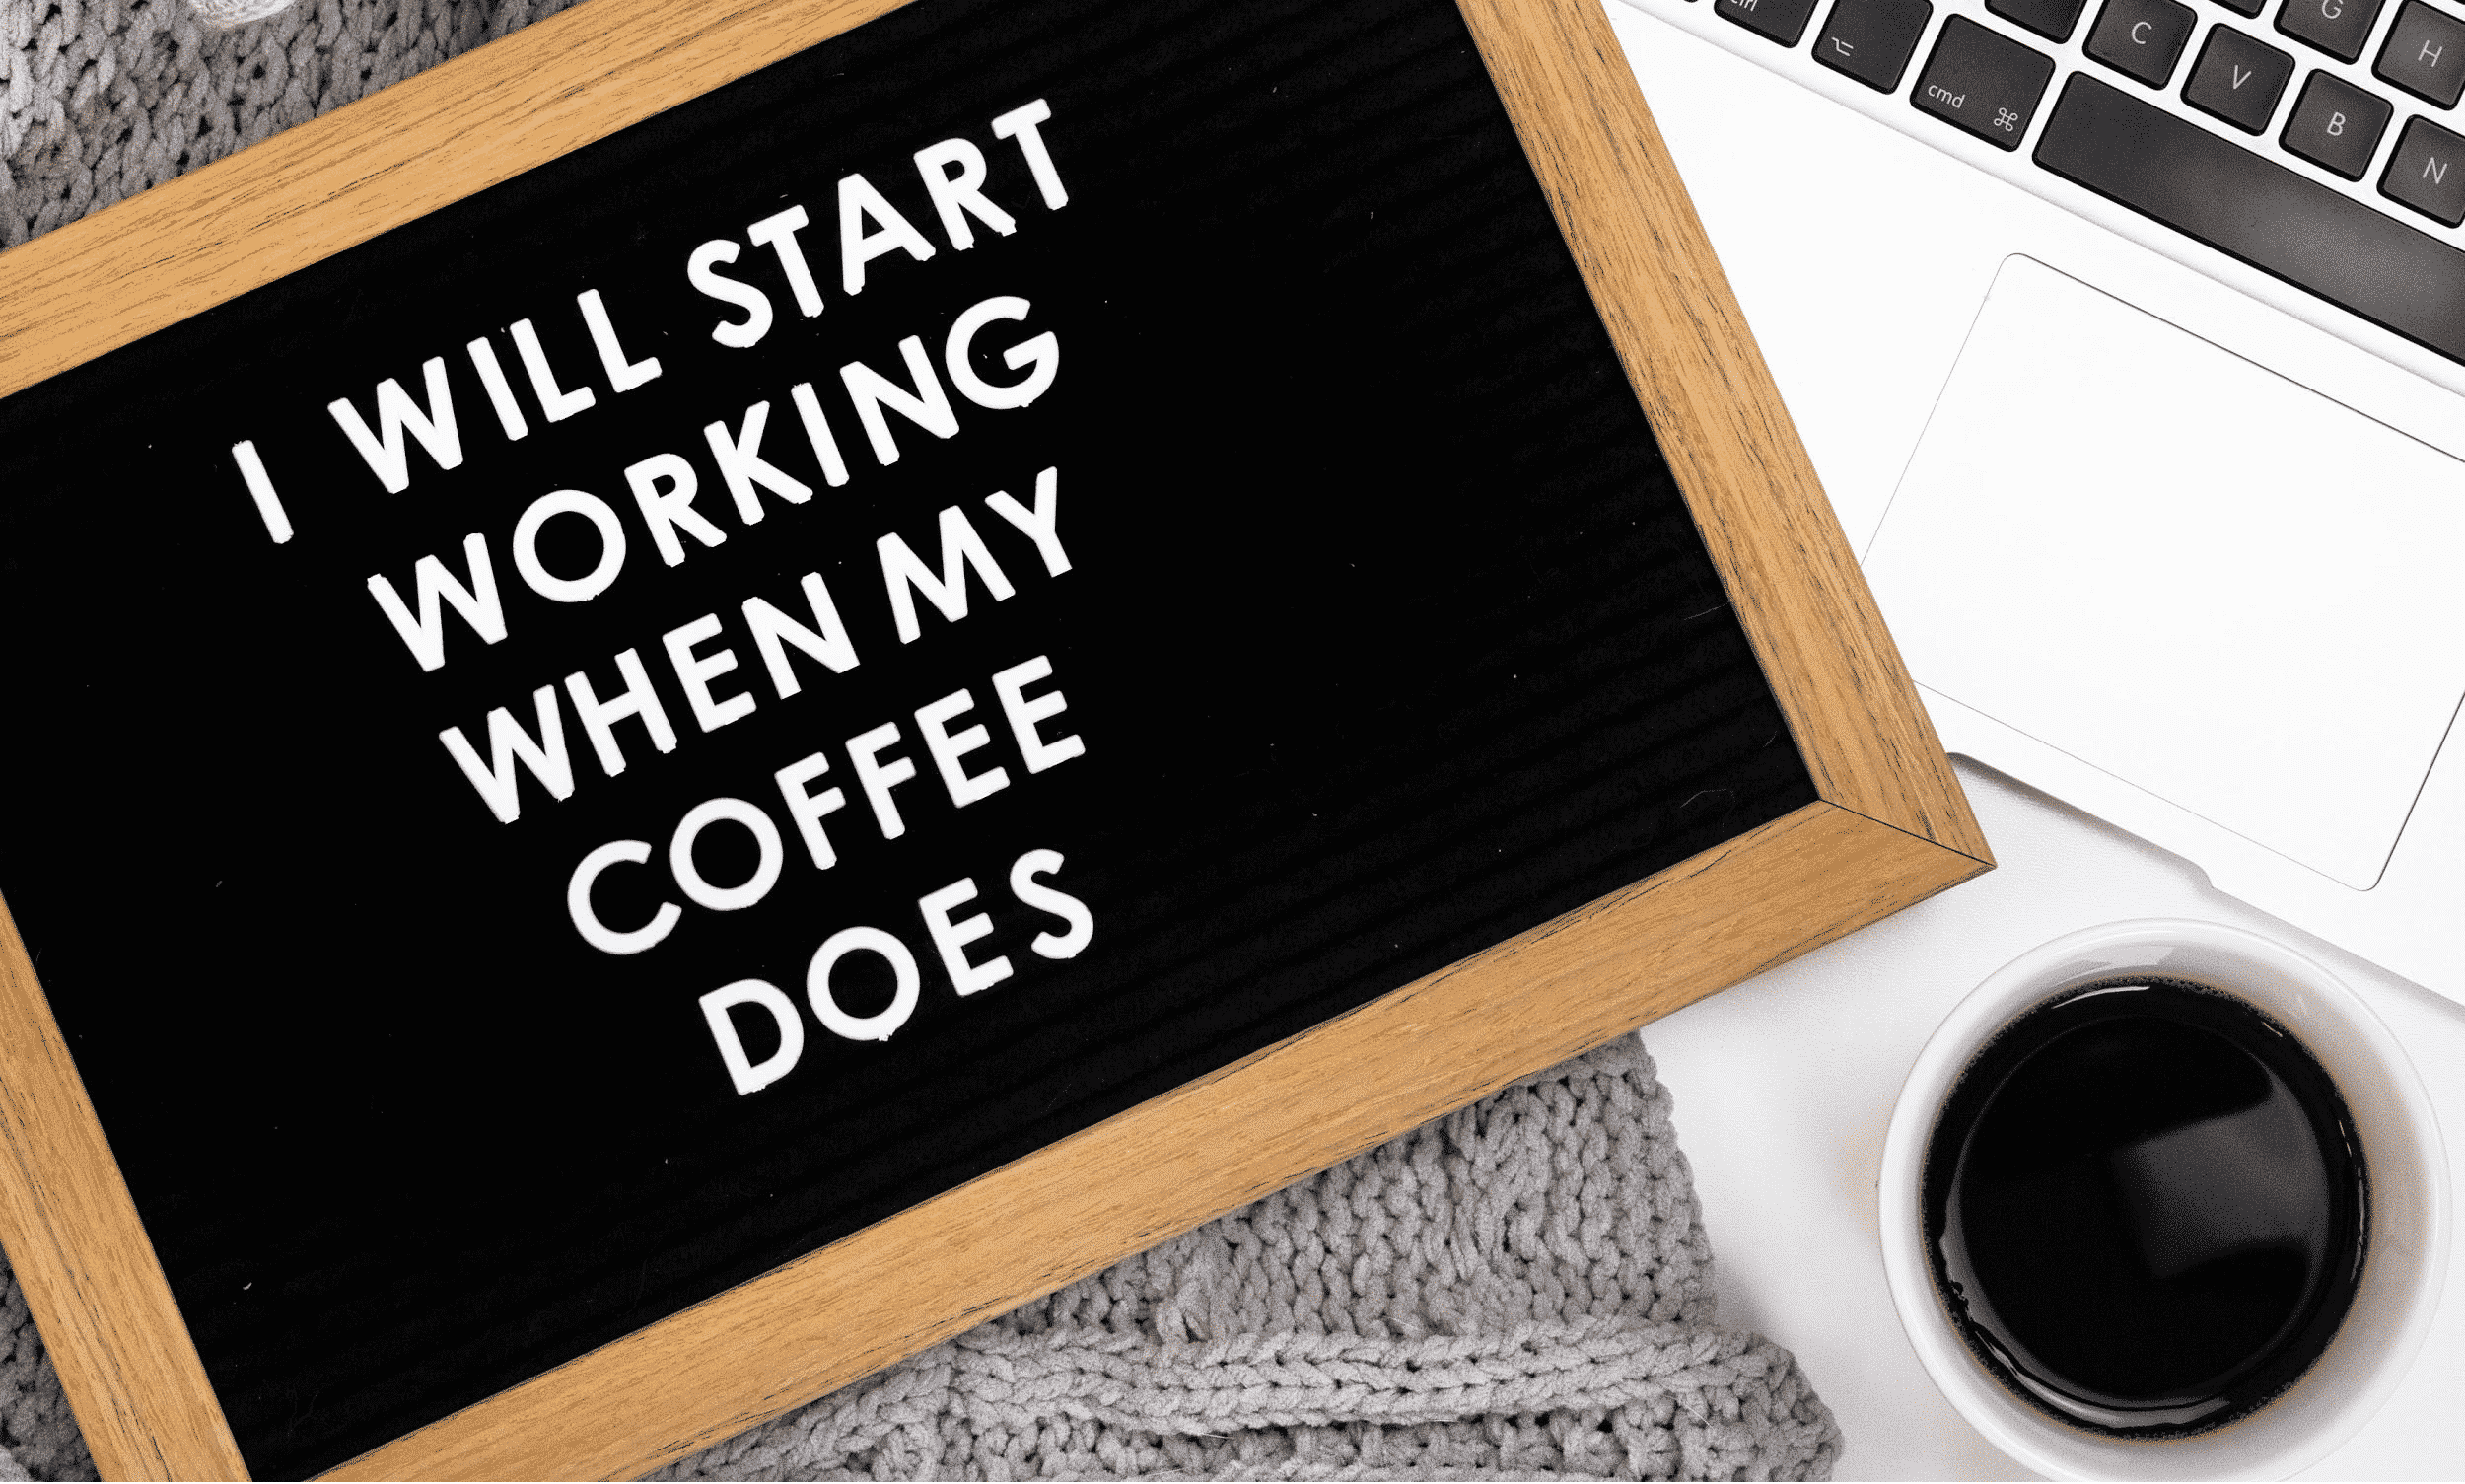 blackboard with writings about work and coffee